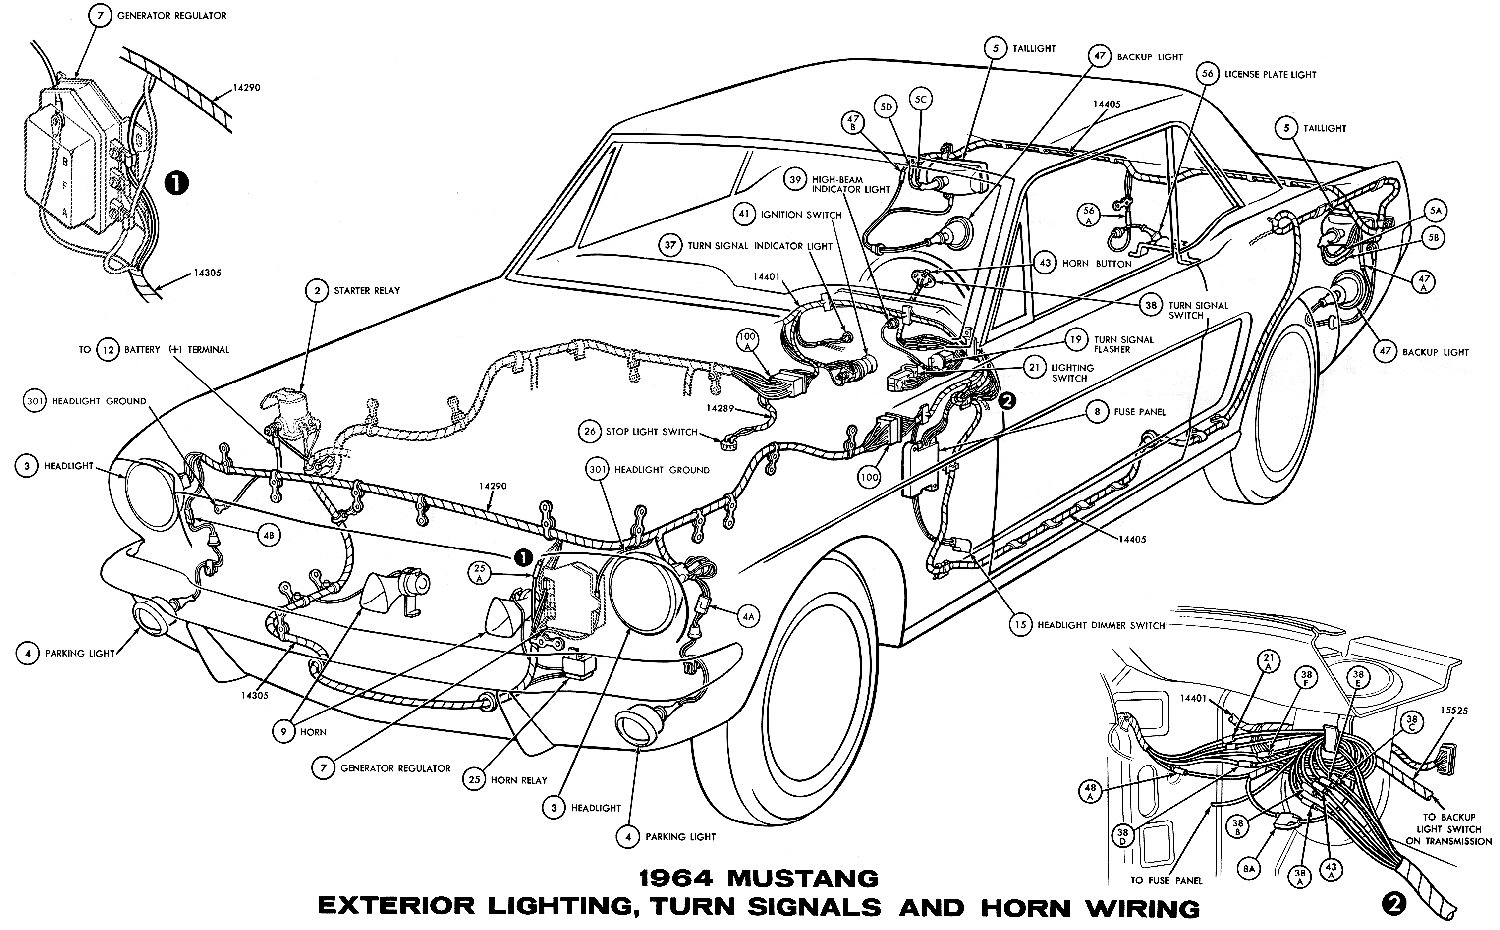 1964 mustang wiring diagrams average joe restoration rh averagejoerestoration com 65 Mustang Radio Wiring Diagrams 1966 Mustang Alternator Wiring Diagram